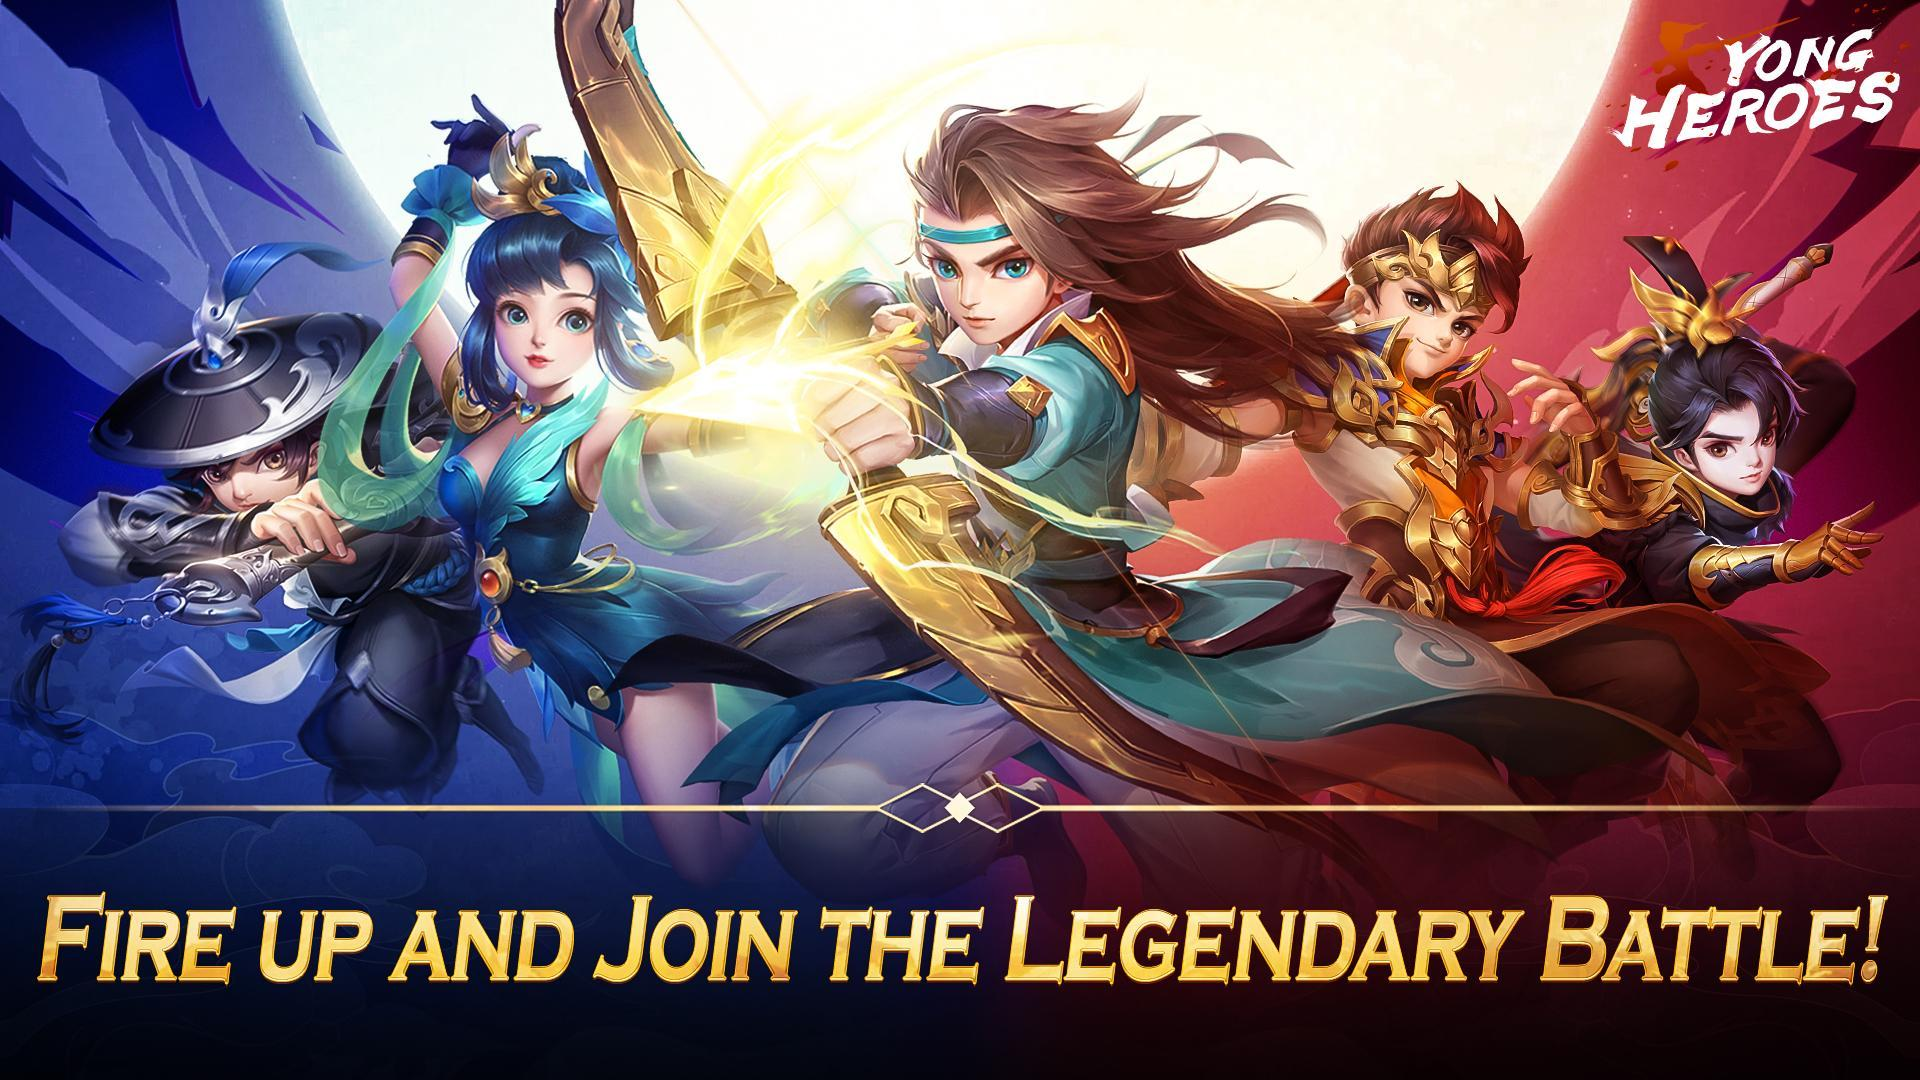 How To Increase Your Combat Power In Yong Heroes: Become A Better Hero?